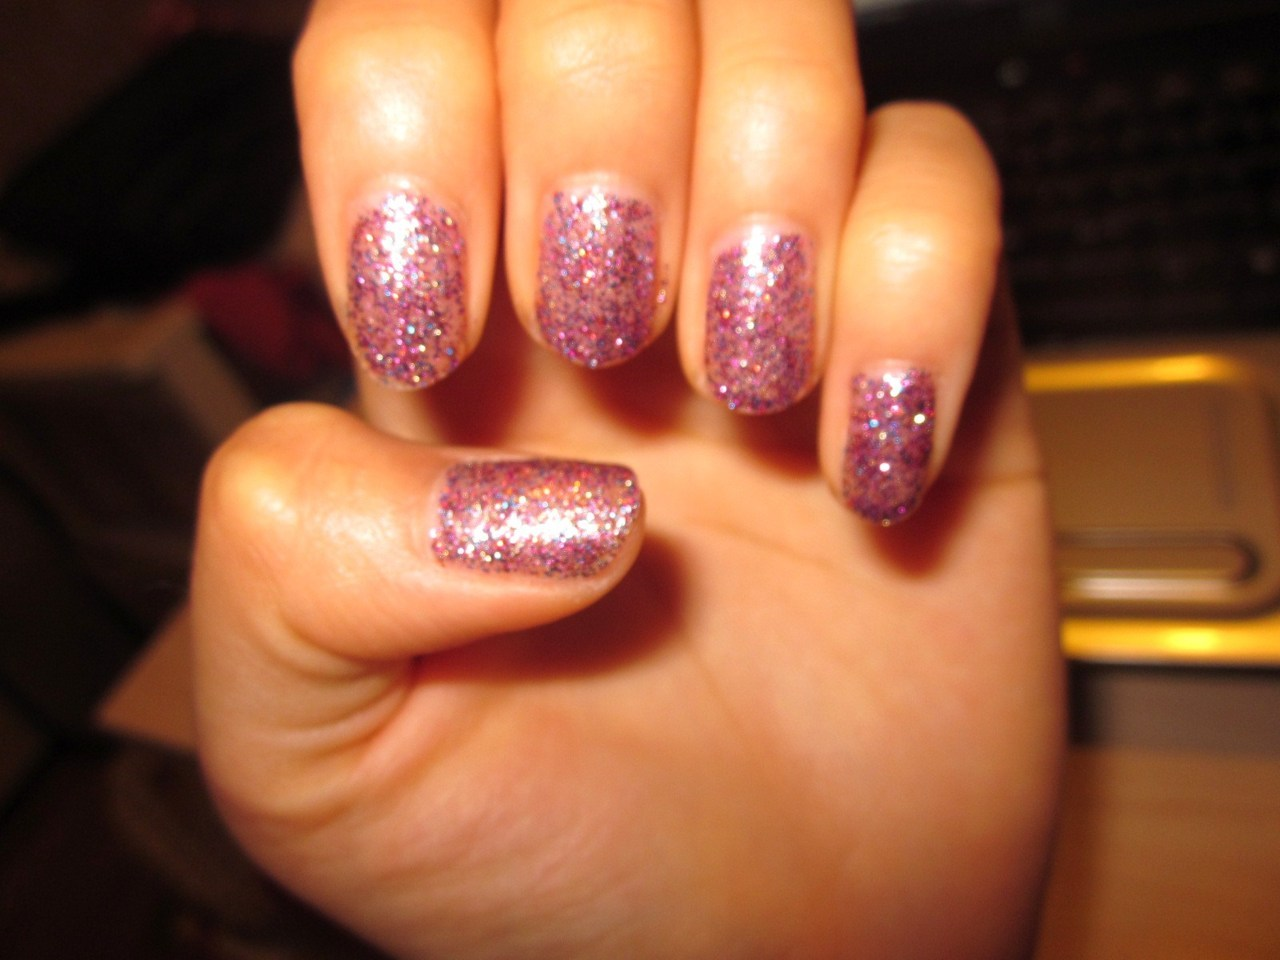 "camera kinda sucks at capturing them, BUT here are my sparkly nails~ hehe katy perry's ""firework"" song inspired me to get this glittery color ^.^"